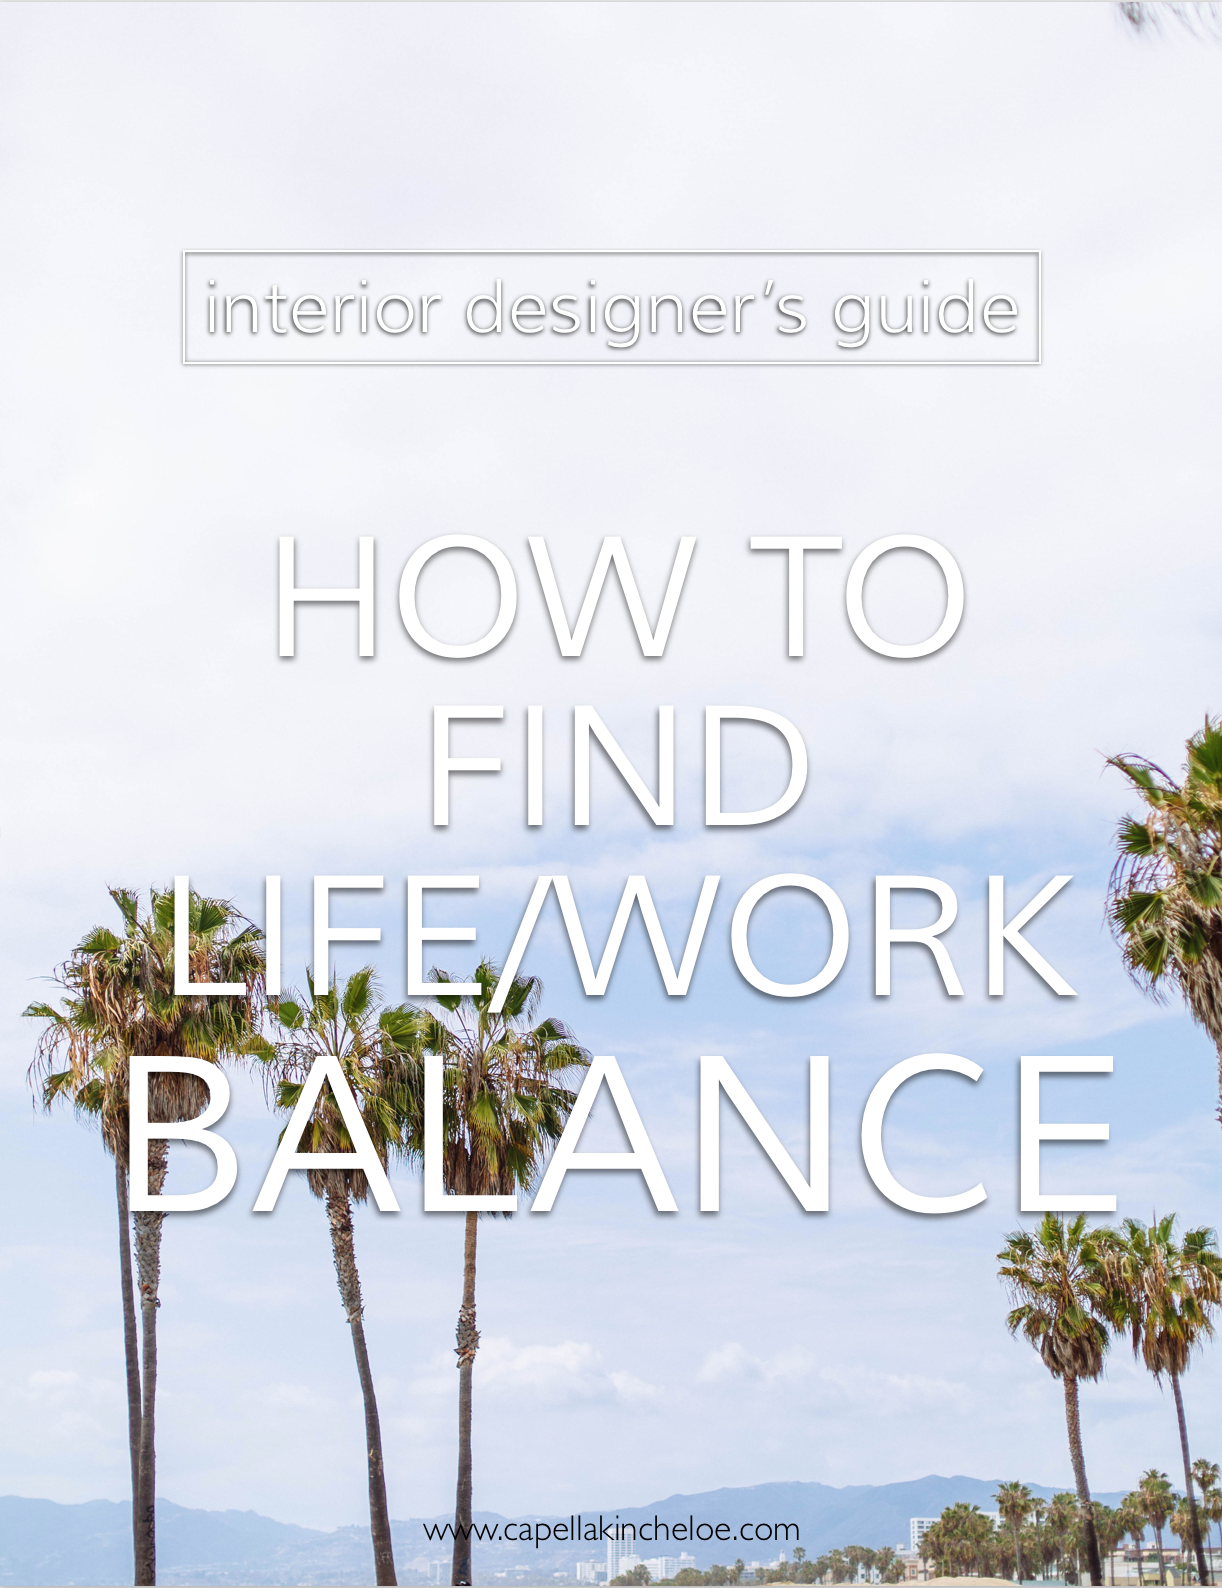 Running an interior design business, you probably feel a little out of balance, learn what to do to find your equilibrium again. #interiordesignbusiness #cktradesecrets